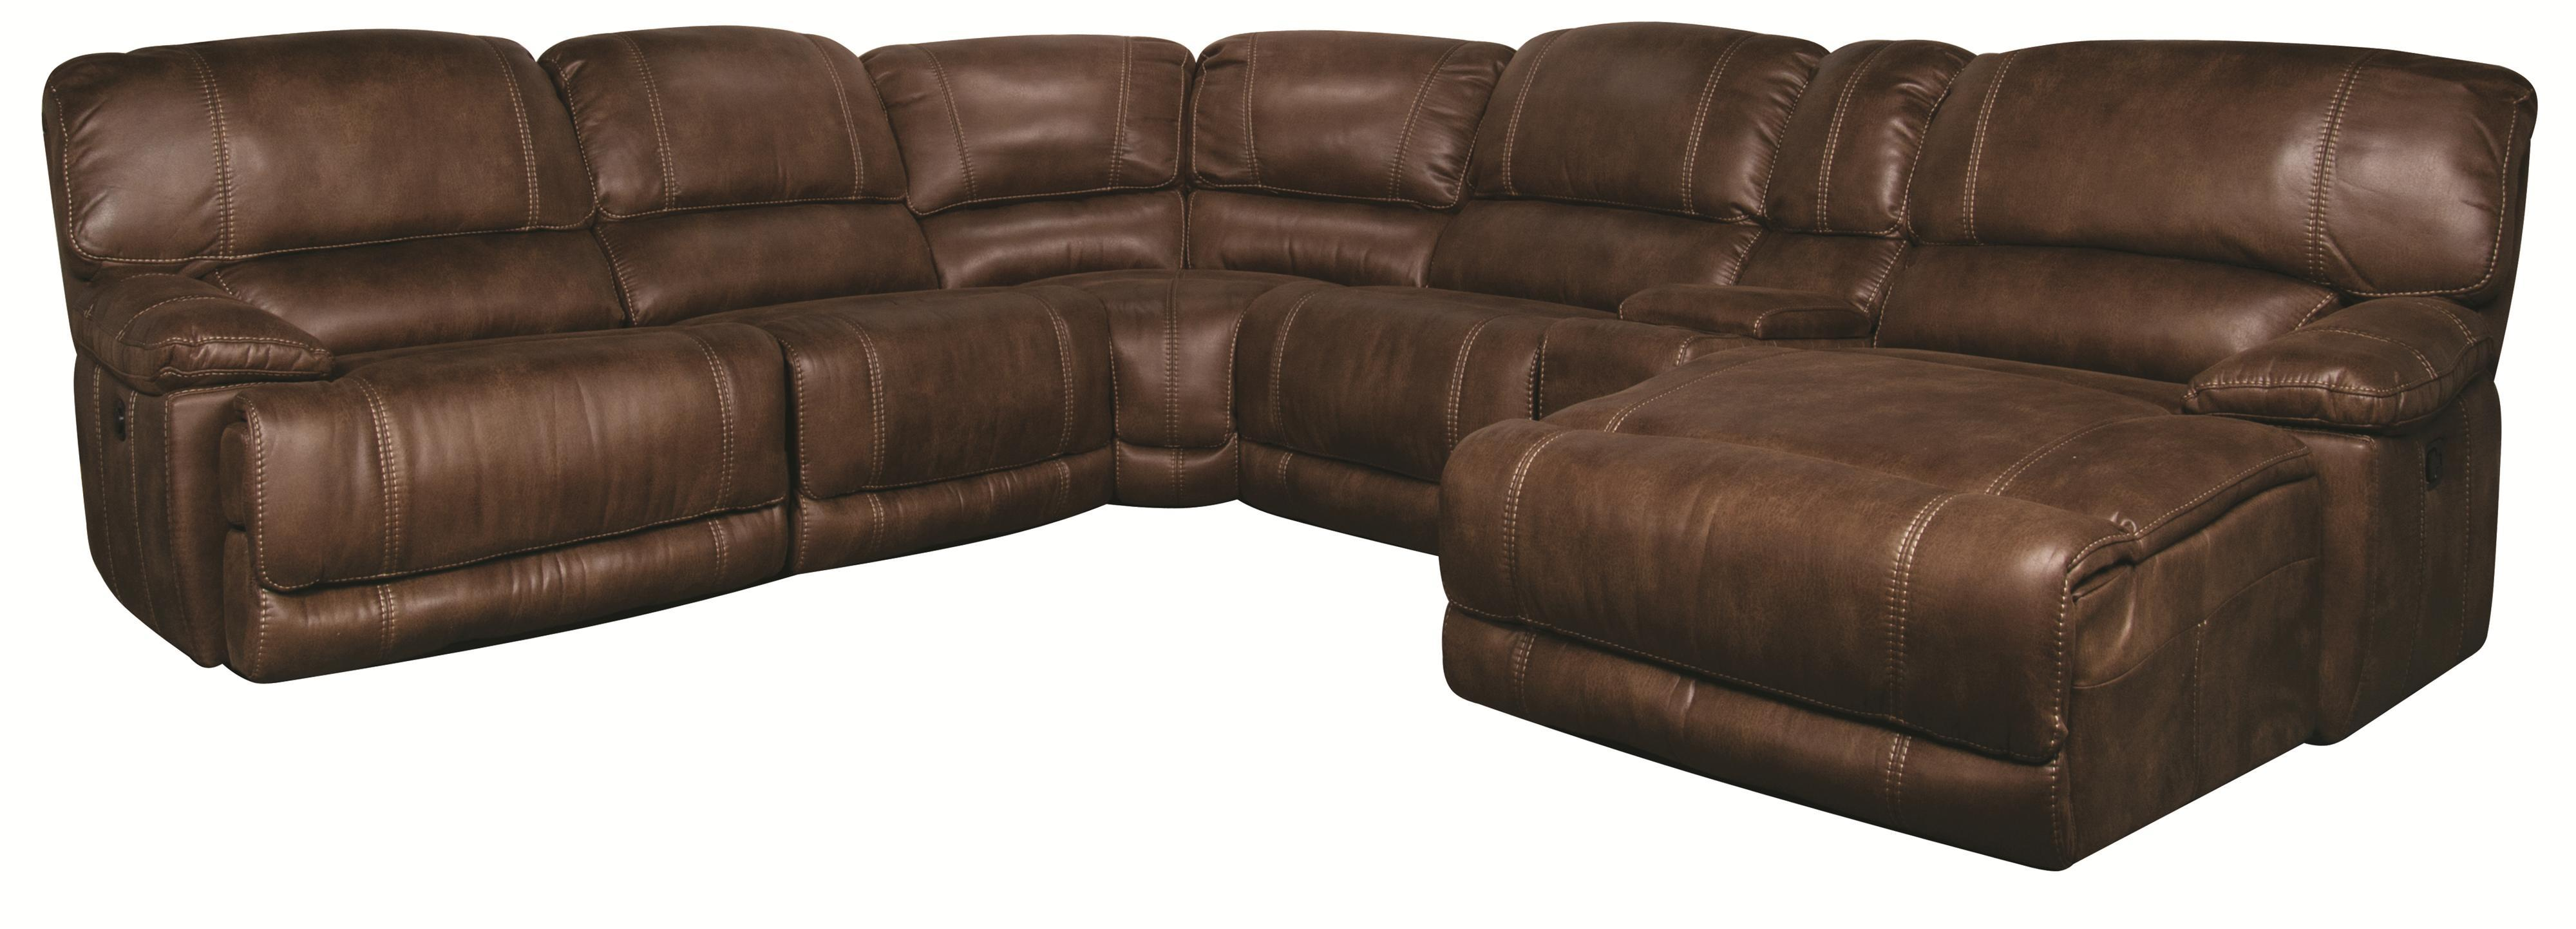 Morris Home Furnishings Sandra Sandra 6-Piece Power Sectional - Item Number: 134032084